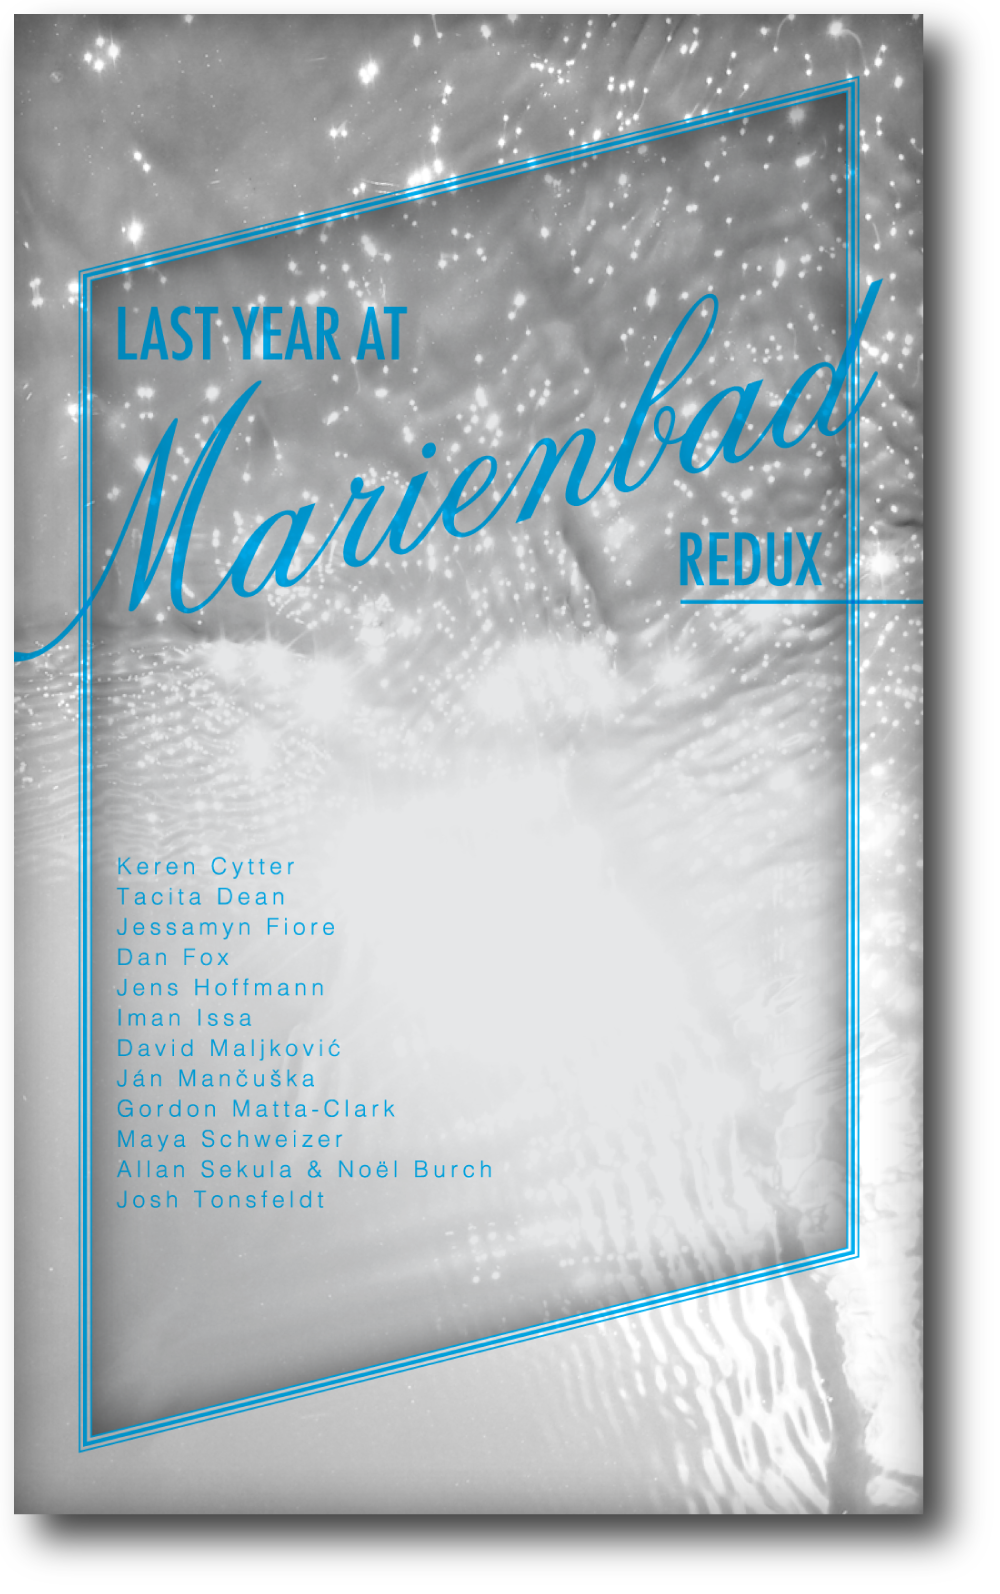 BOC-Publication-last-year-at-marienbad-redux-cover.png